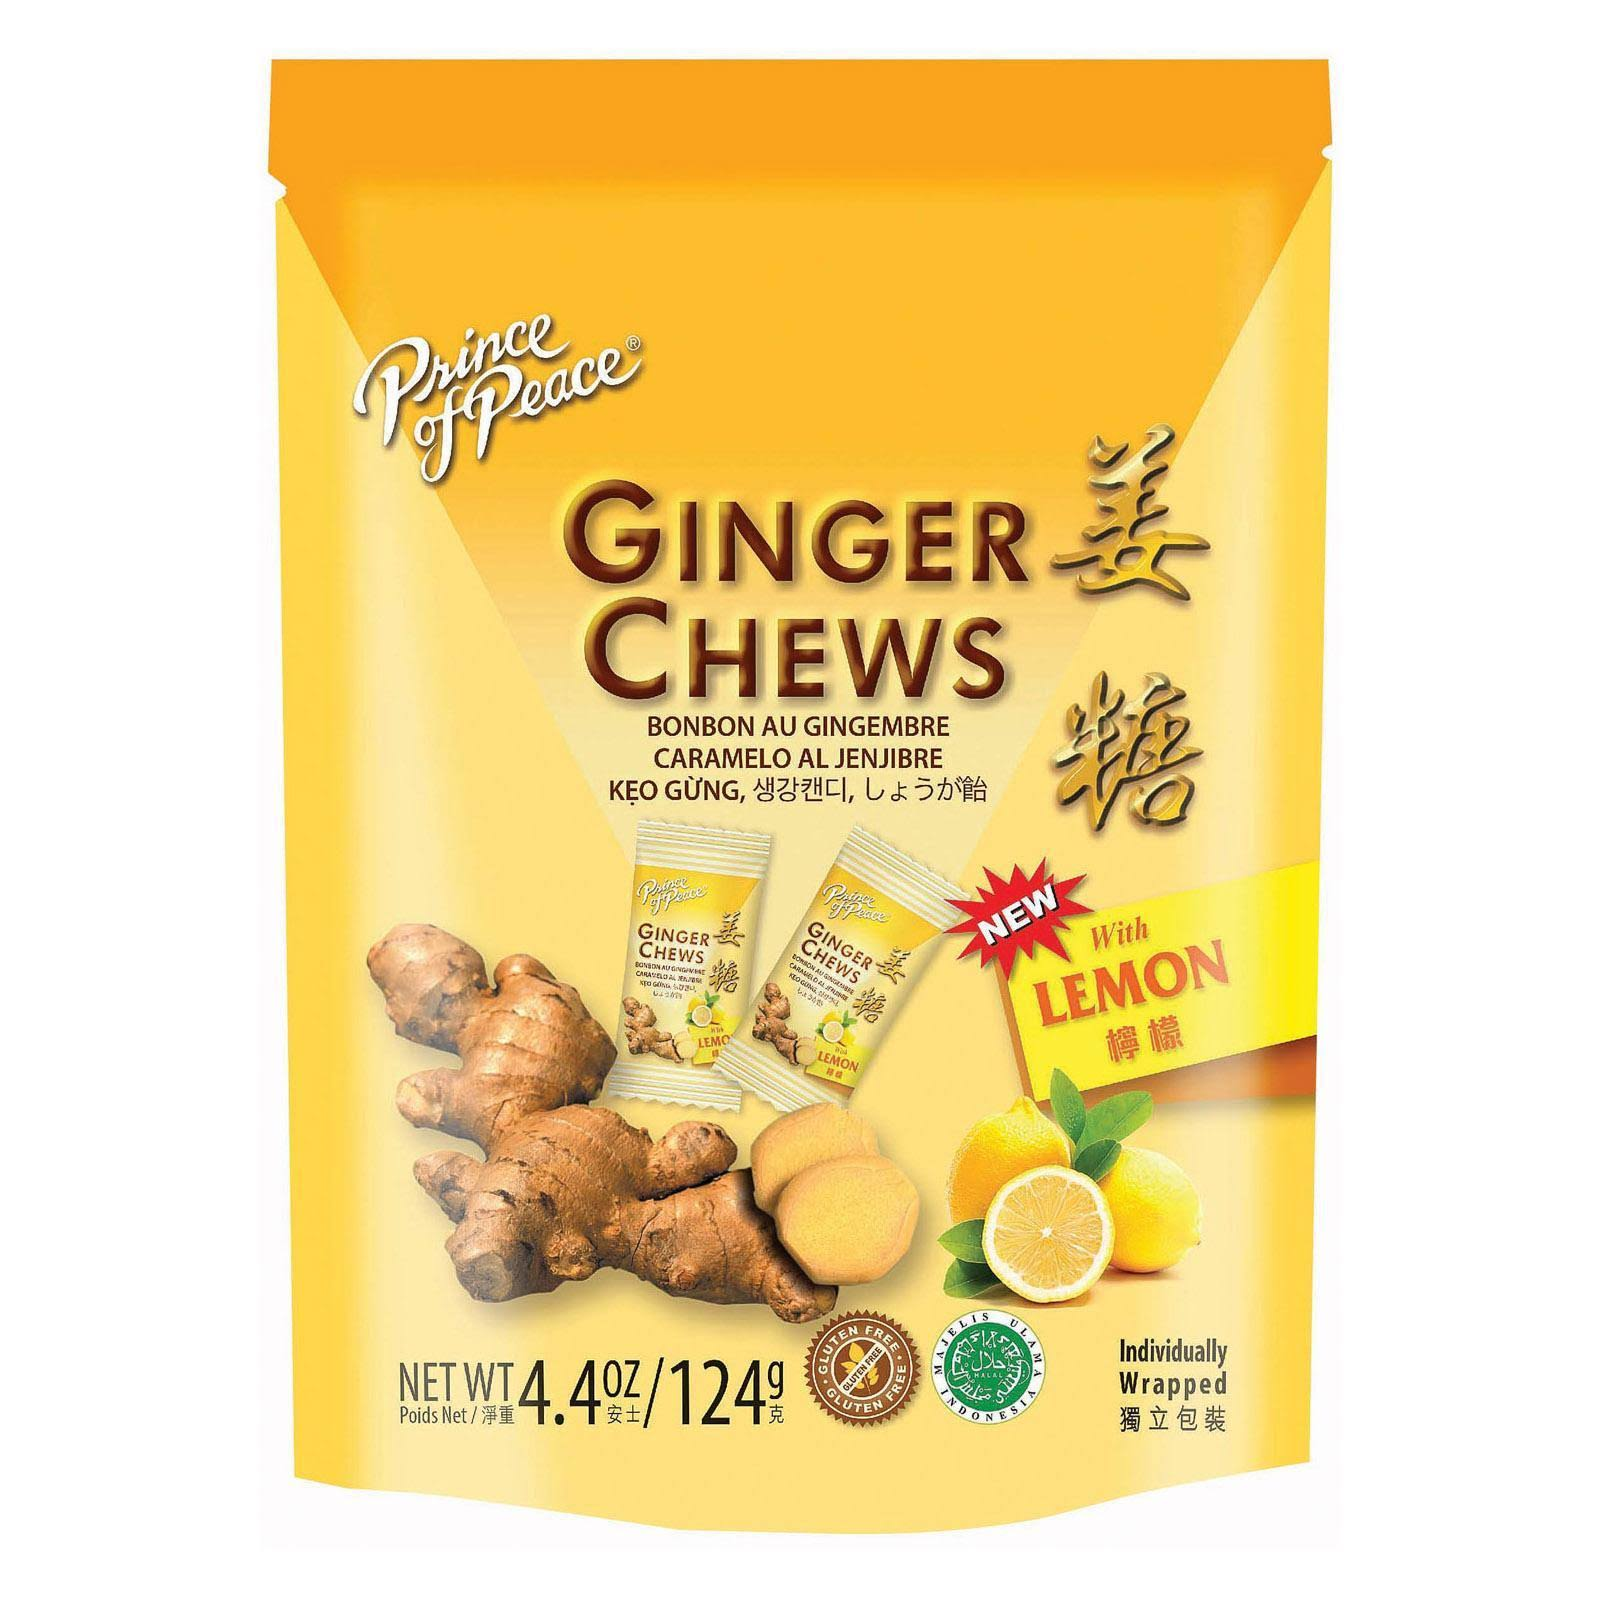 Prince of Peace Lemon Ginger Chewy Candy - 100% Natural, 4.4 oz